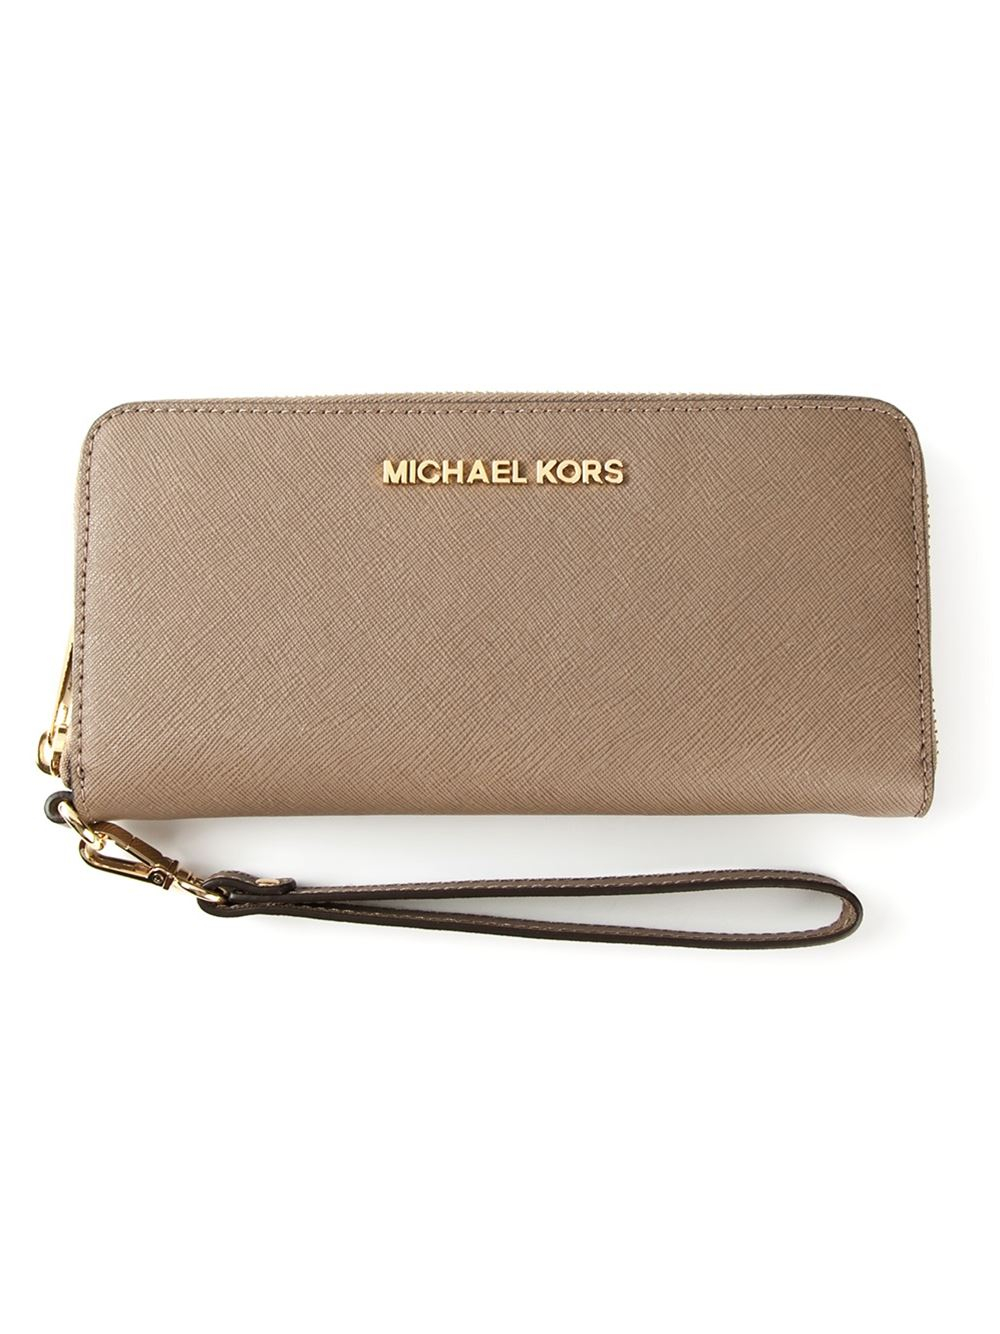 afdfed885f1b Michael Kors Small Wallet Jet Set | Stanford Center for Opportunity ...